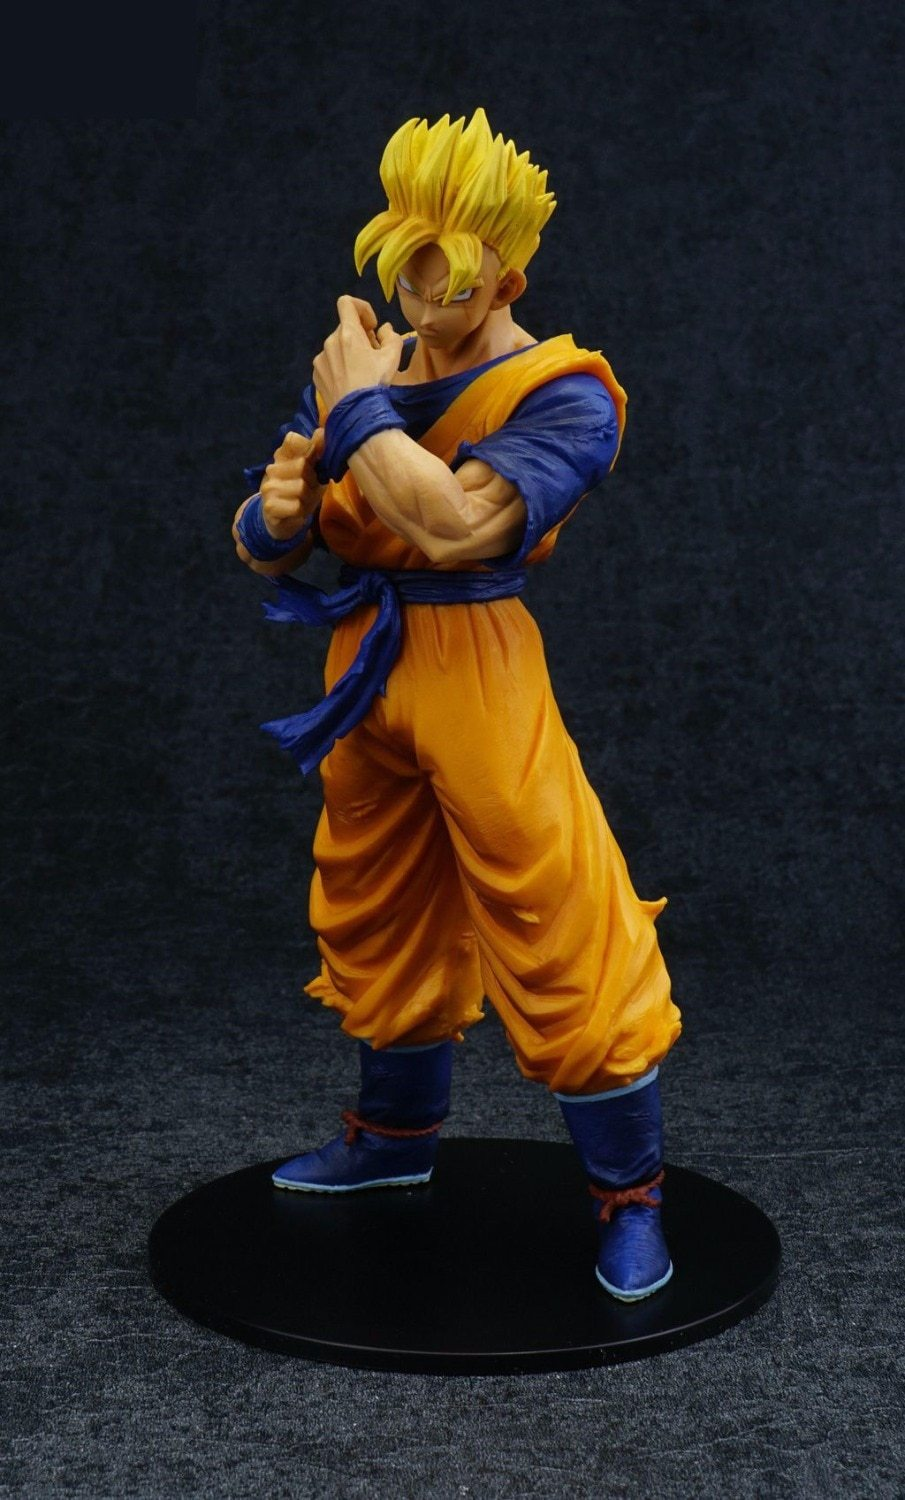 21cm Dragon Ball Z Super Saiyan Son Gohan Anime Action Figure PVC figures toys Collection